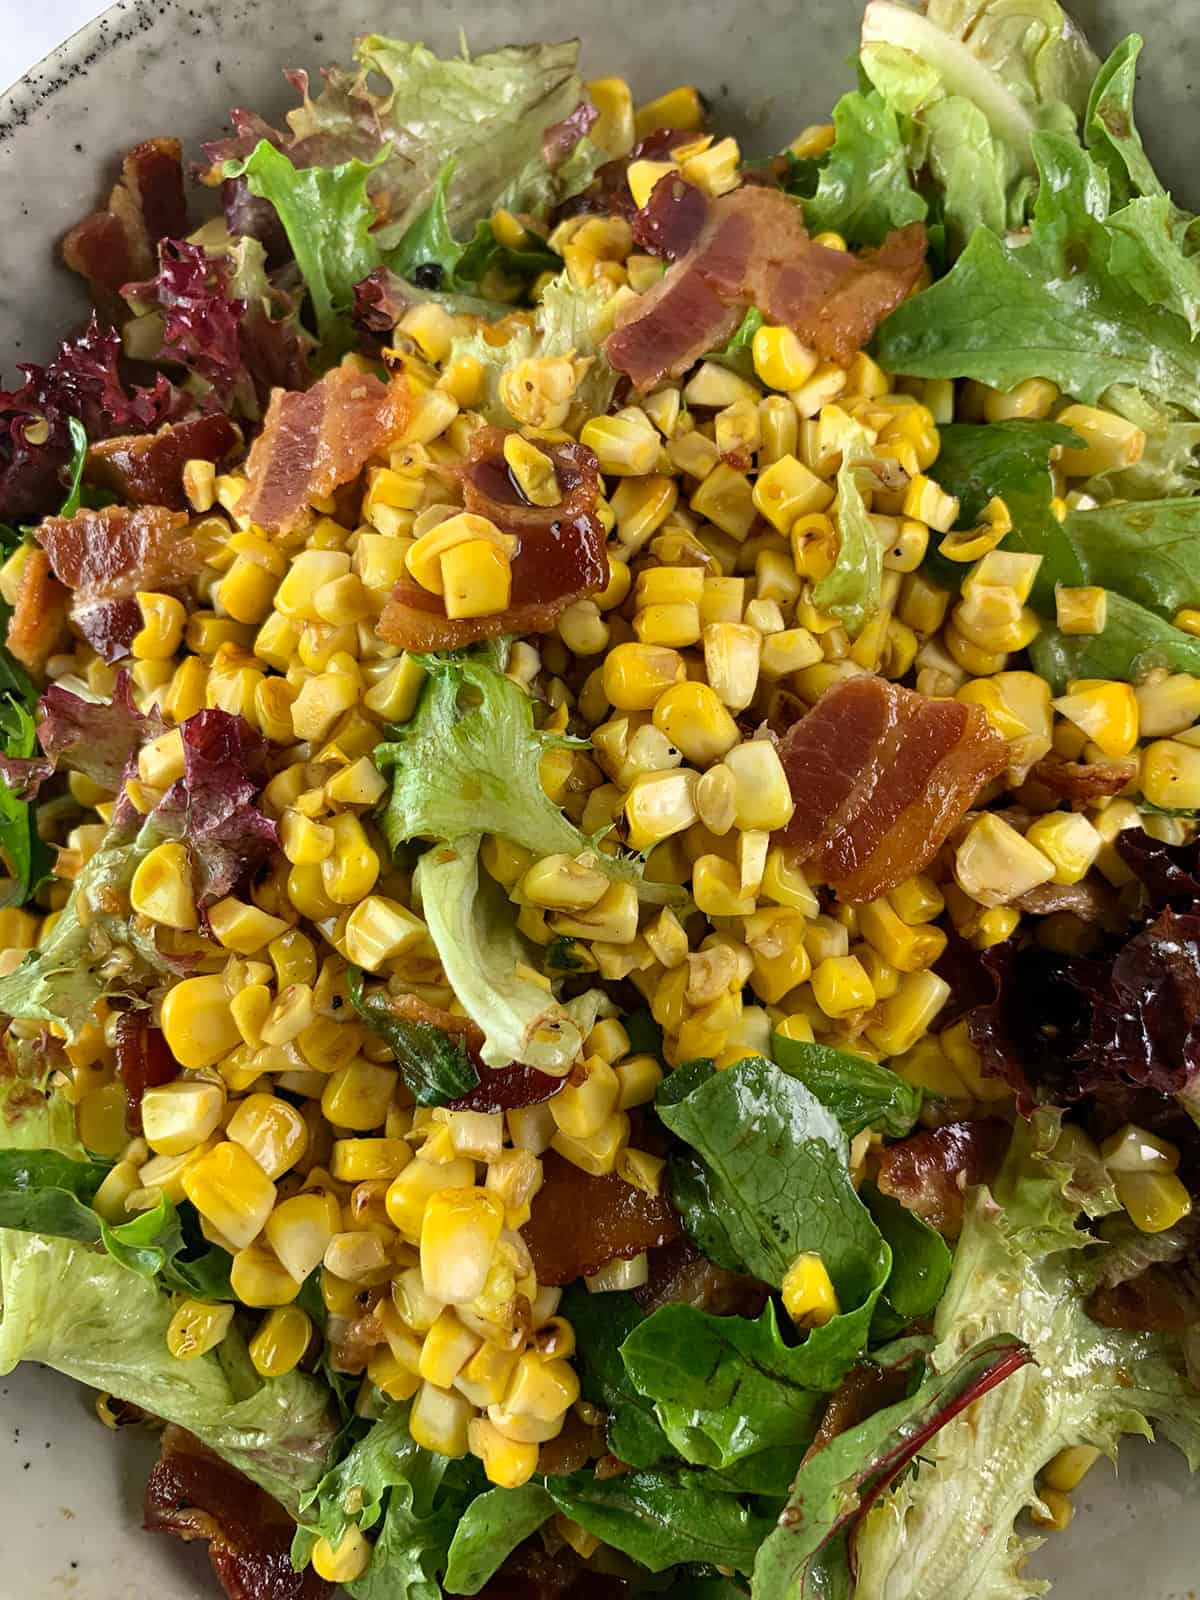 CLOSE UP OF GRILLED CORN SALAD IN PORTRAIT VIEW